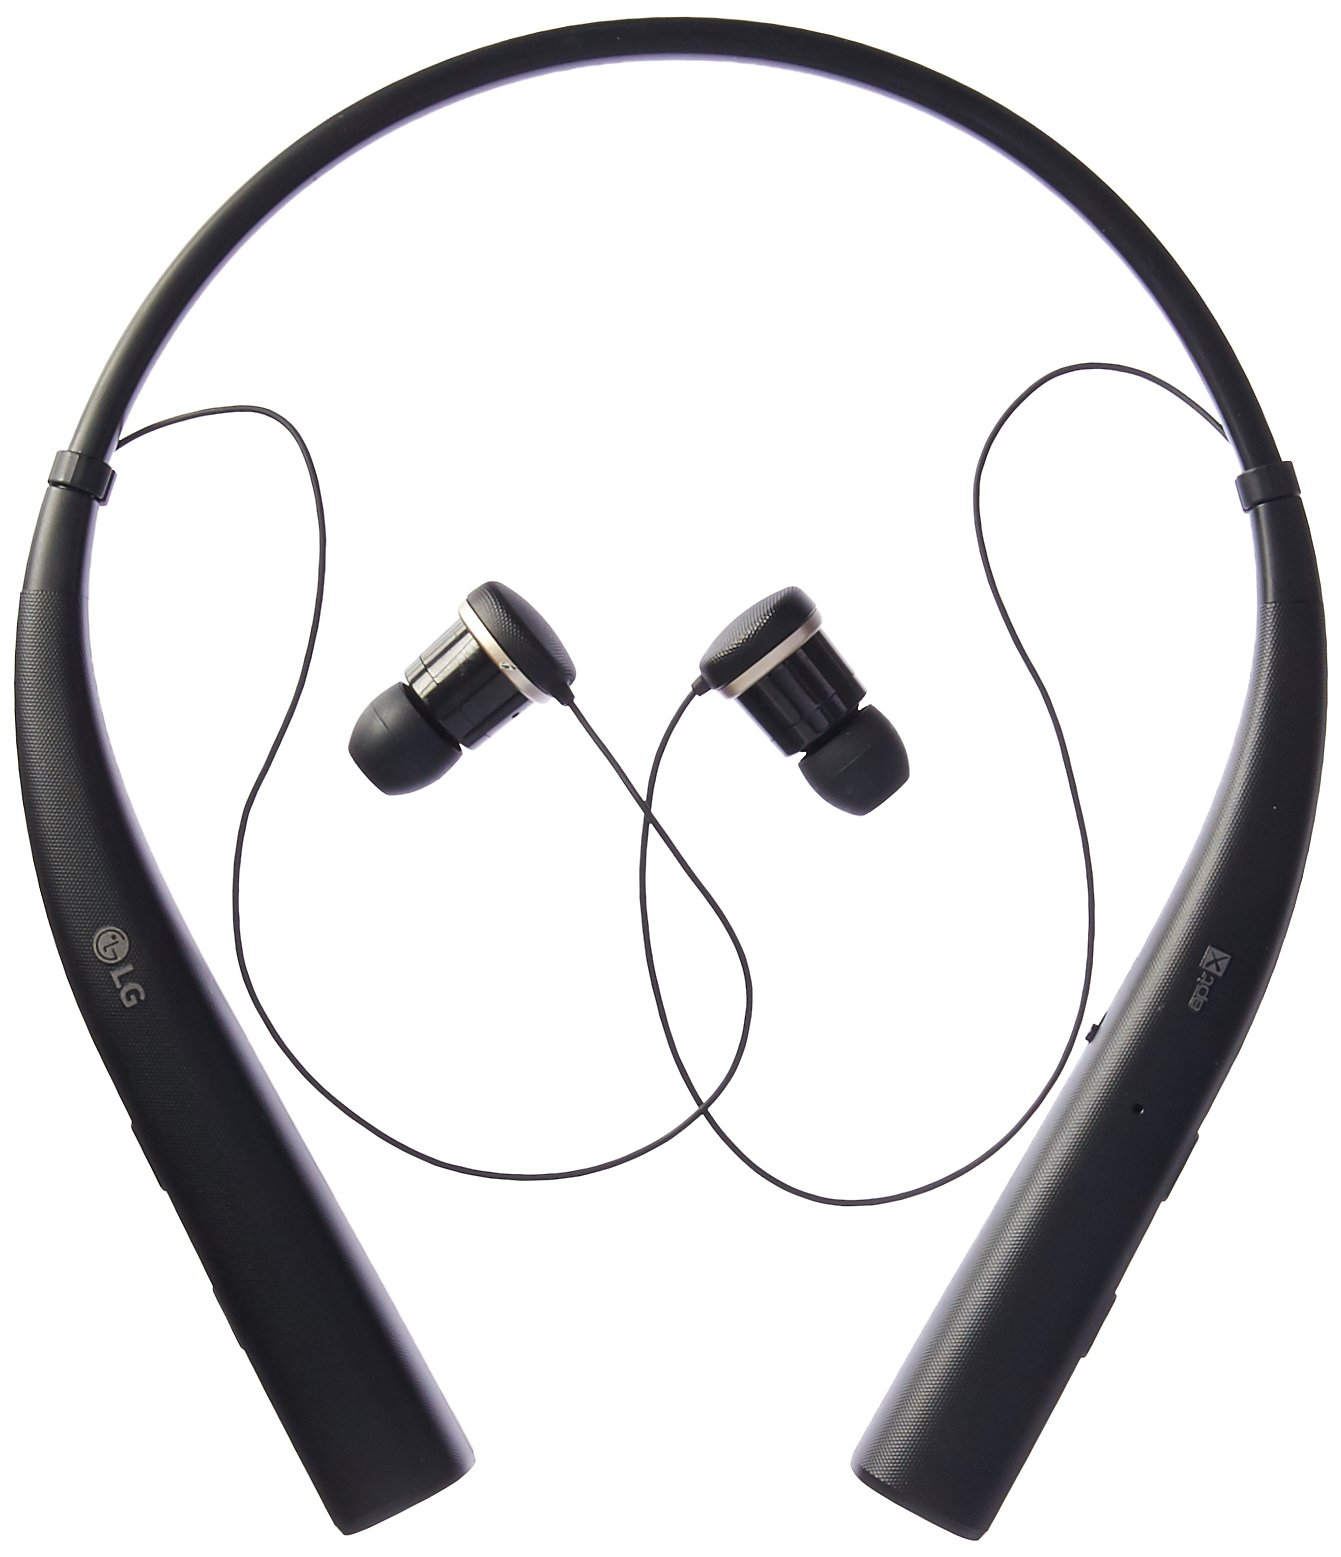 LG TONE PRO HBS-780 Wireless Stereo Headset - Black by LG